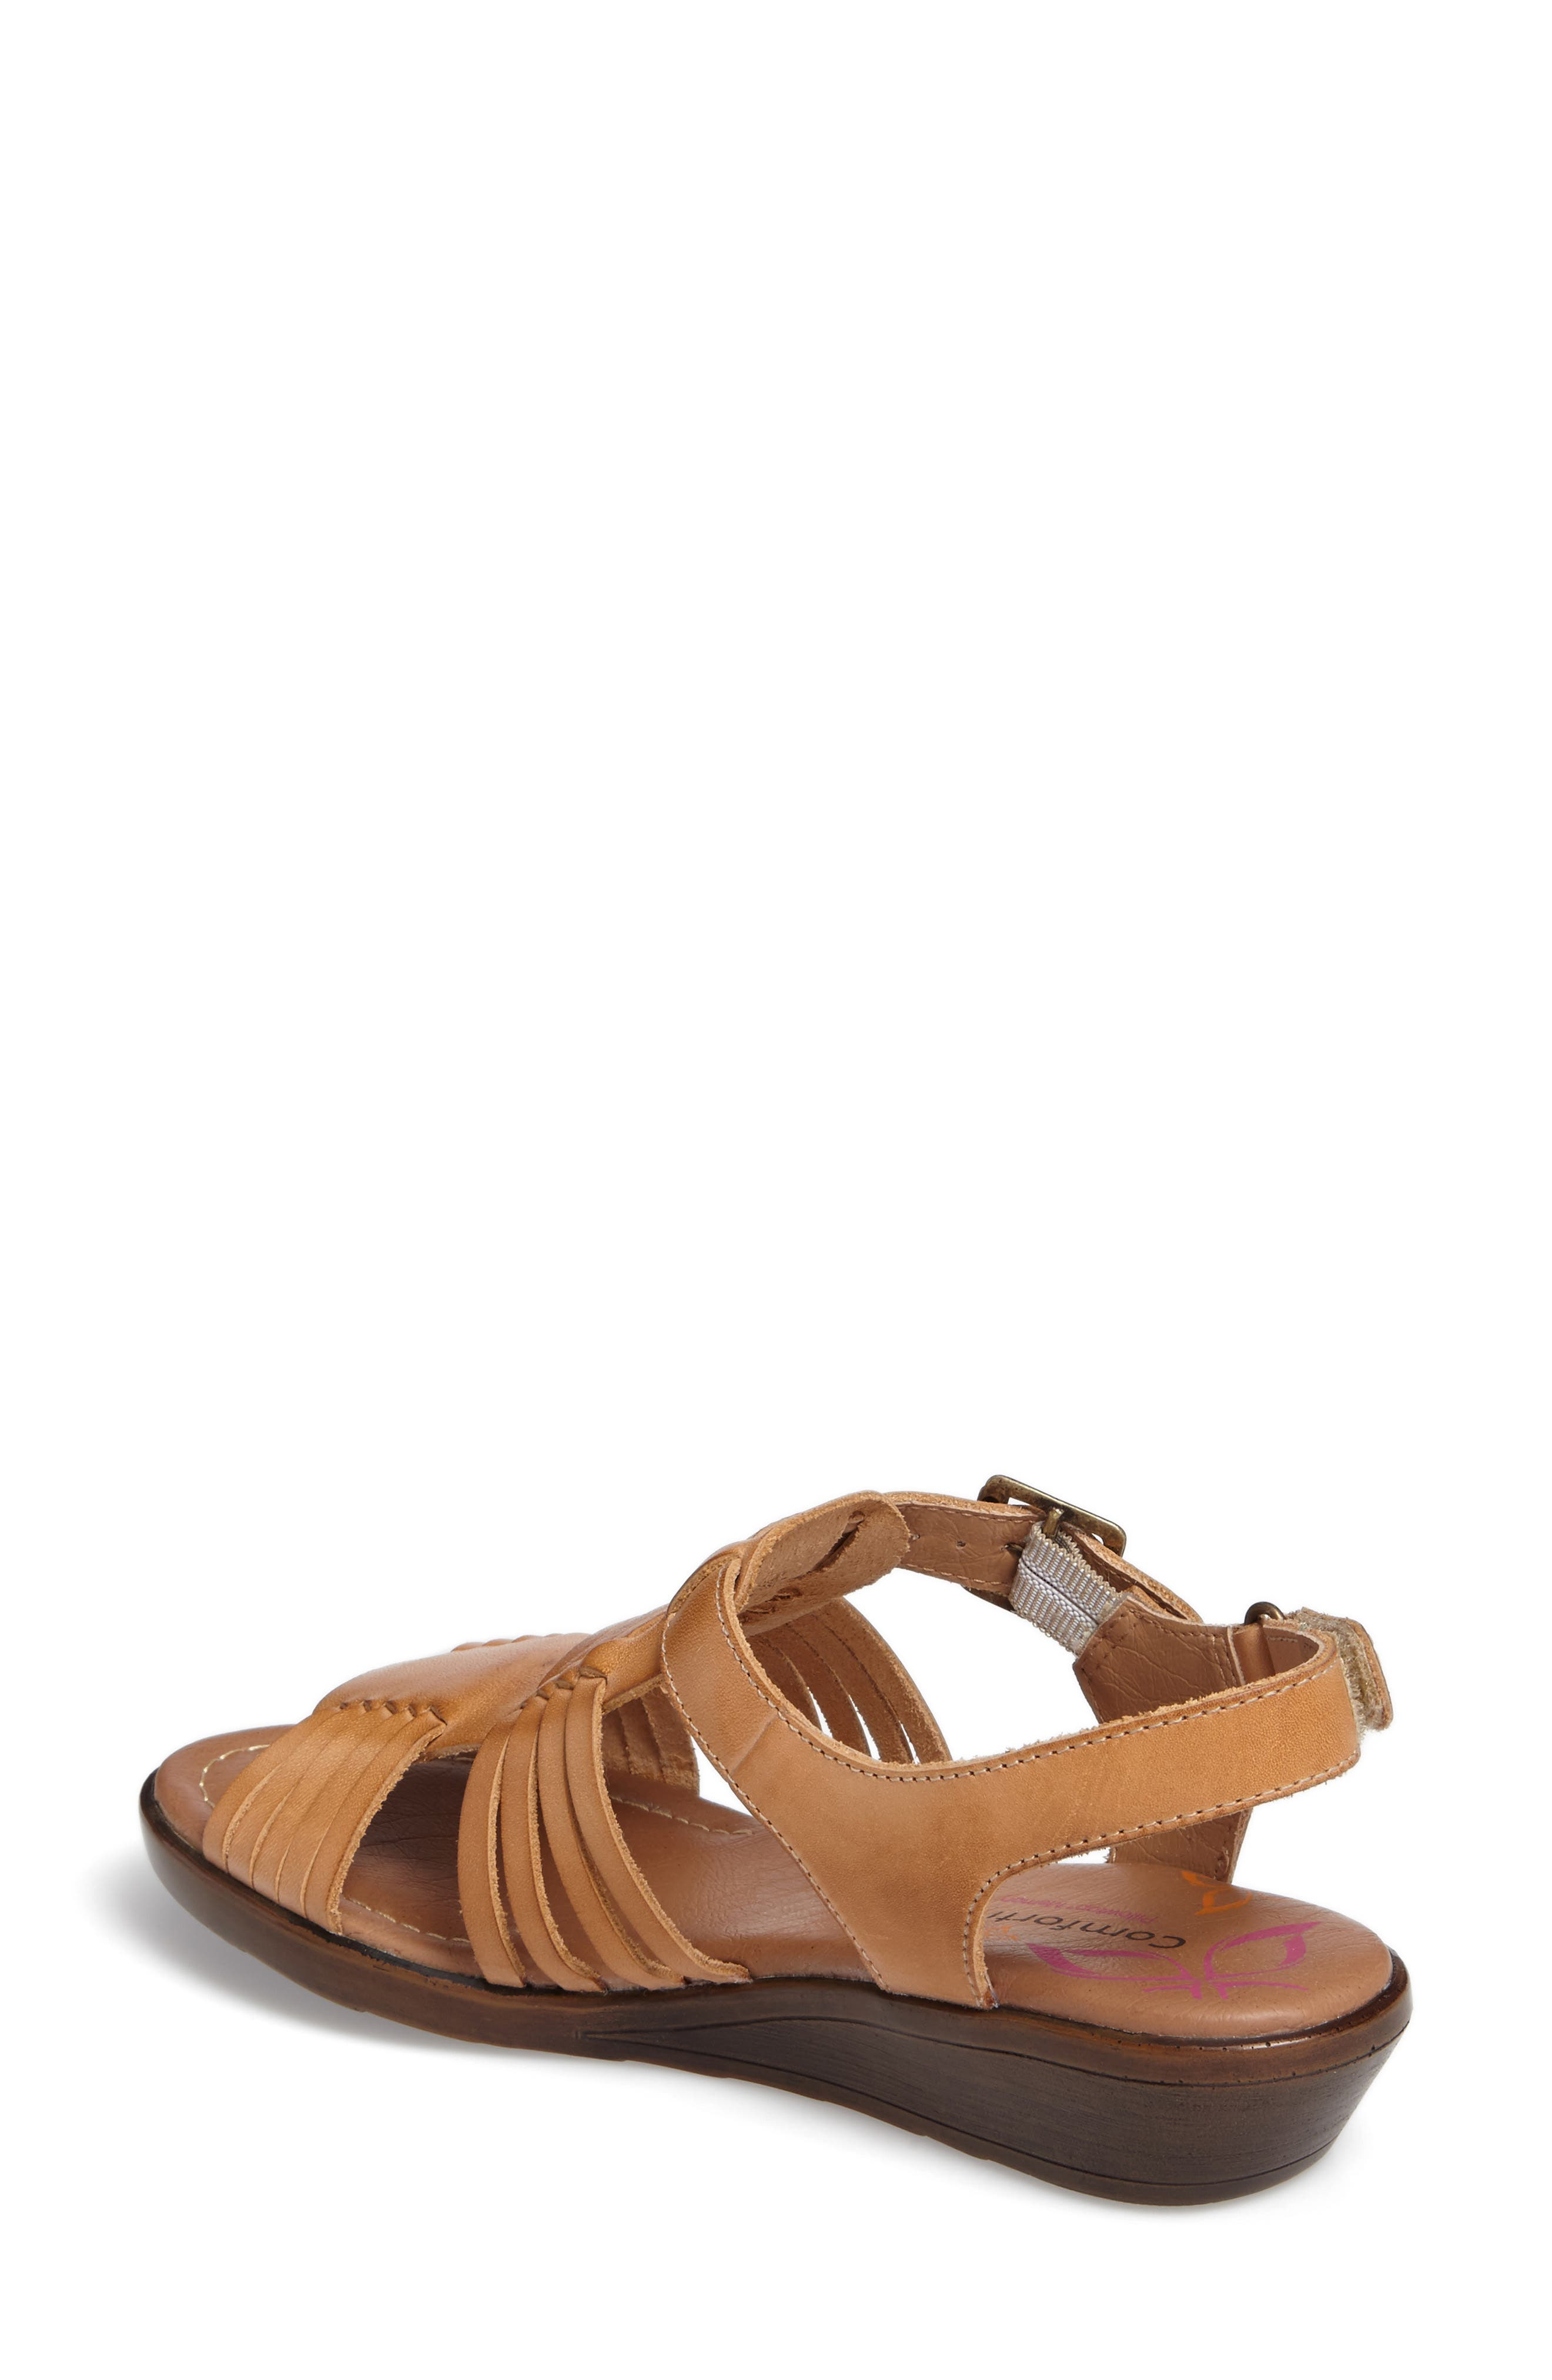 Freeport Sandal,                             Alternate thumbnail 2, color,                             NATURAL LEATHER